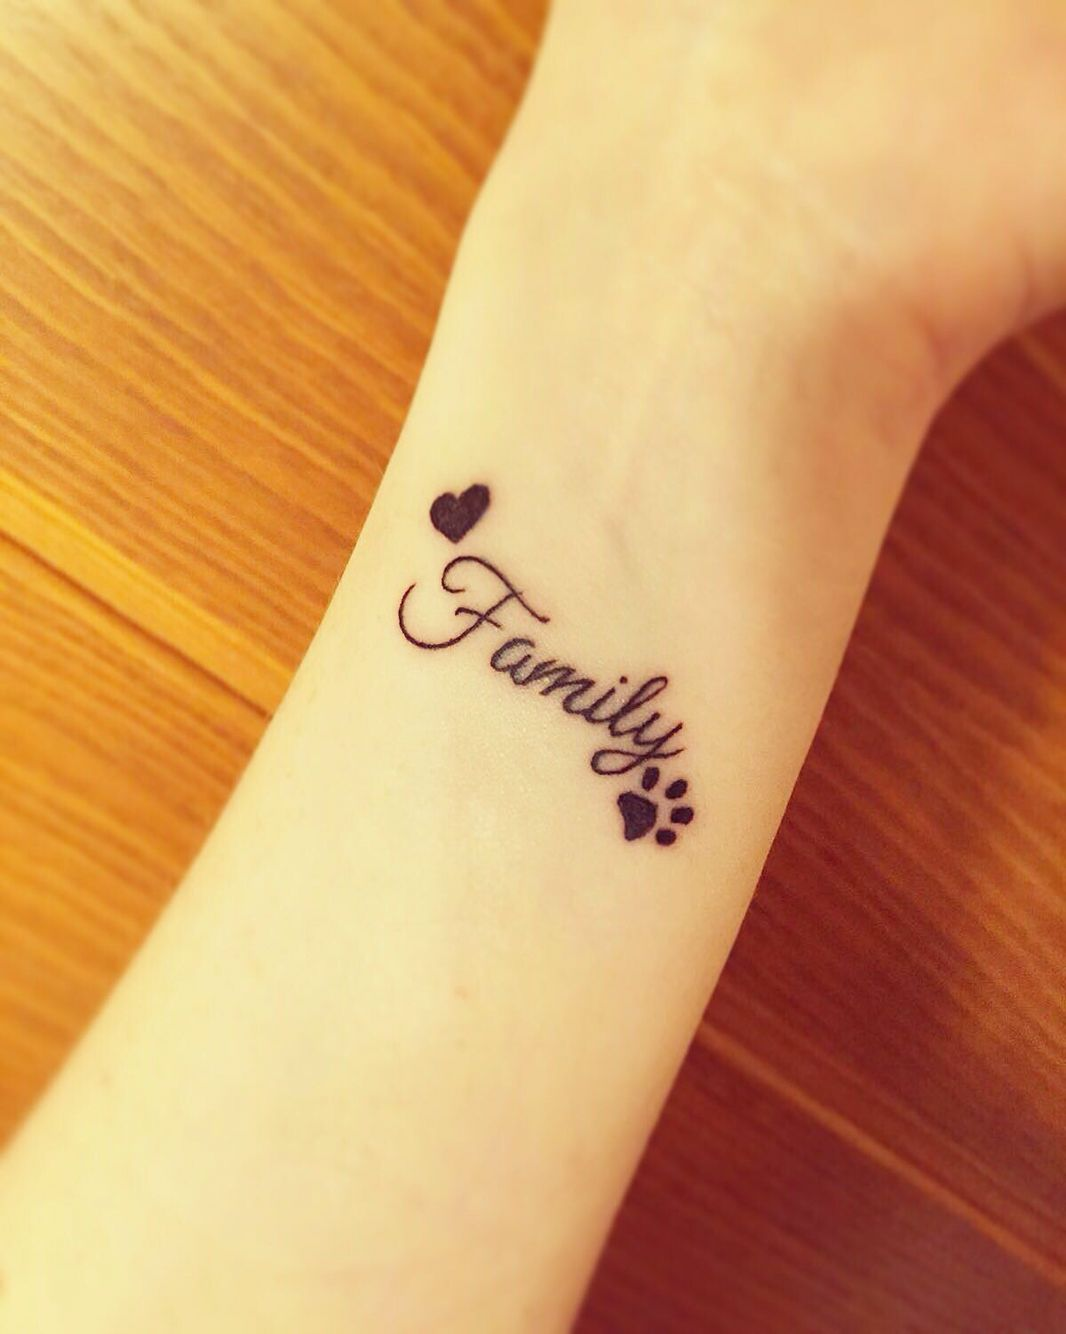 Little heart tattoo on wrist - Family Tattoo Small Tattoo Heart Paw More